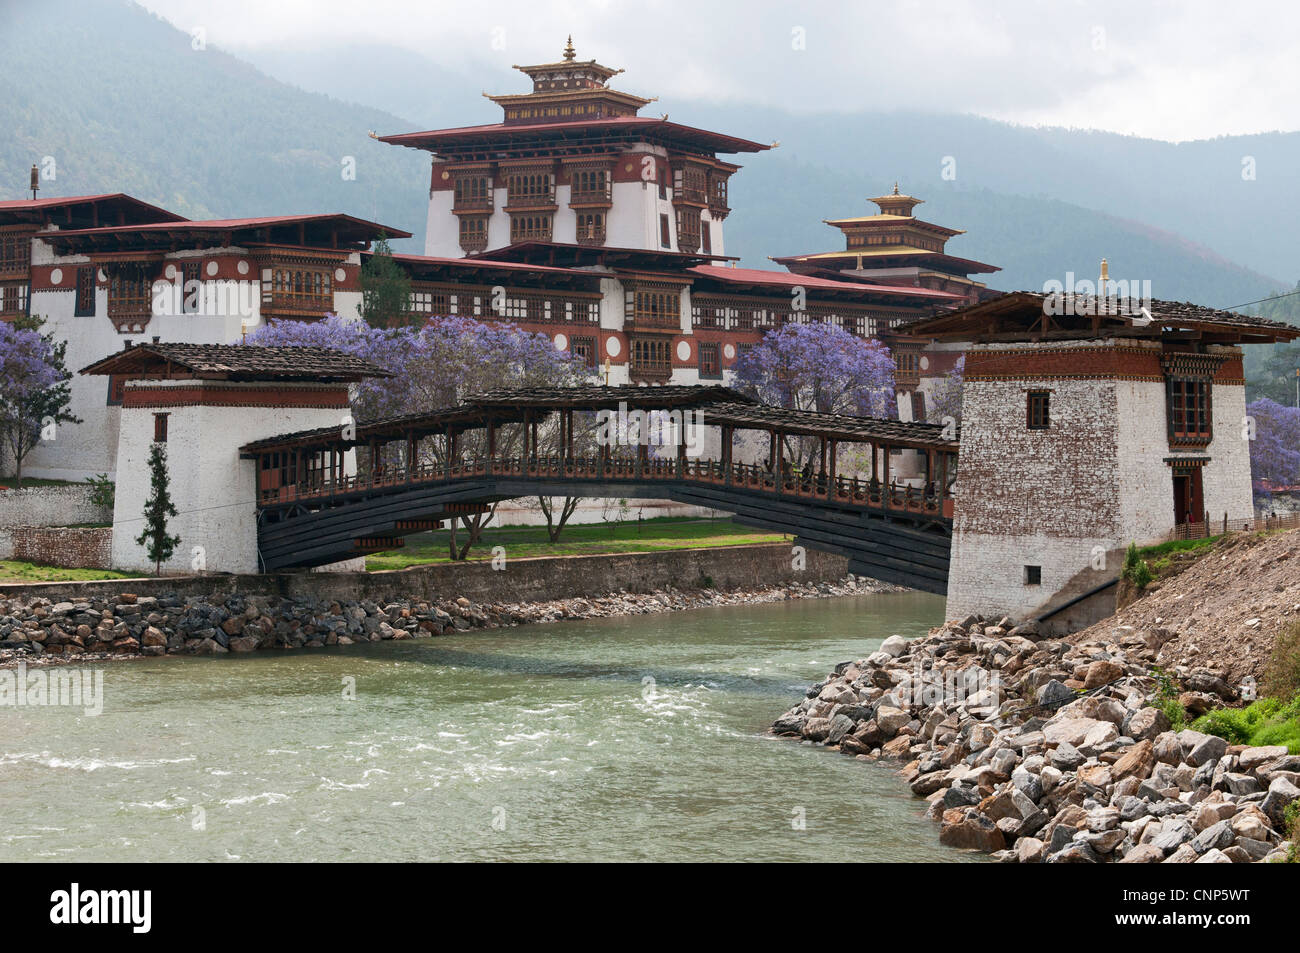 Asia, Bhutan. Cantilevered foot bridge near the entrance to the Punakha Dzong palace - Stock Image